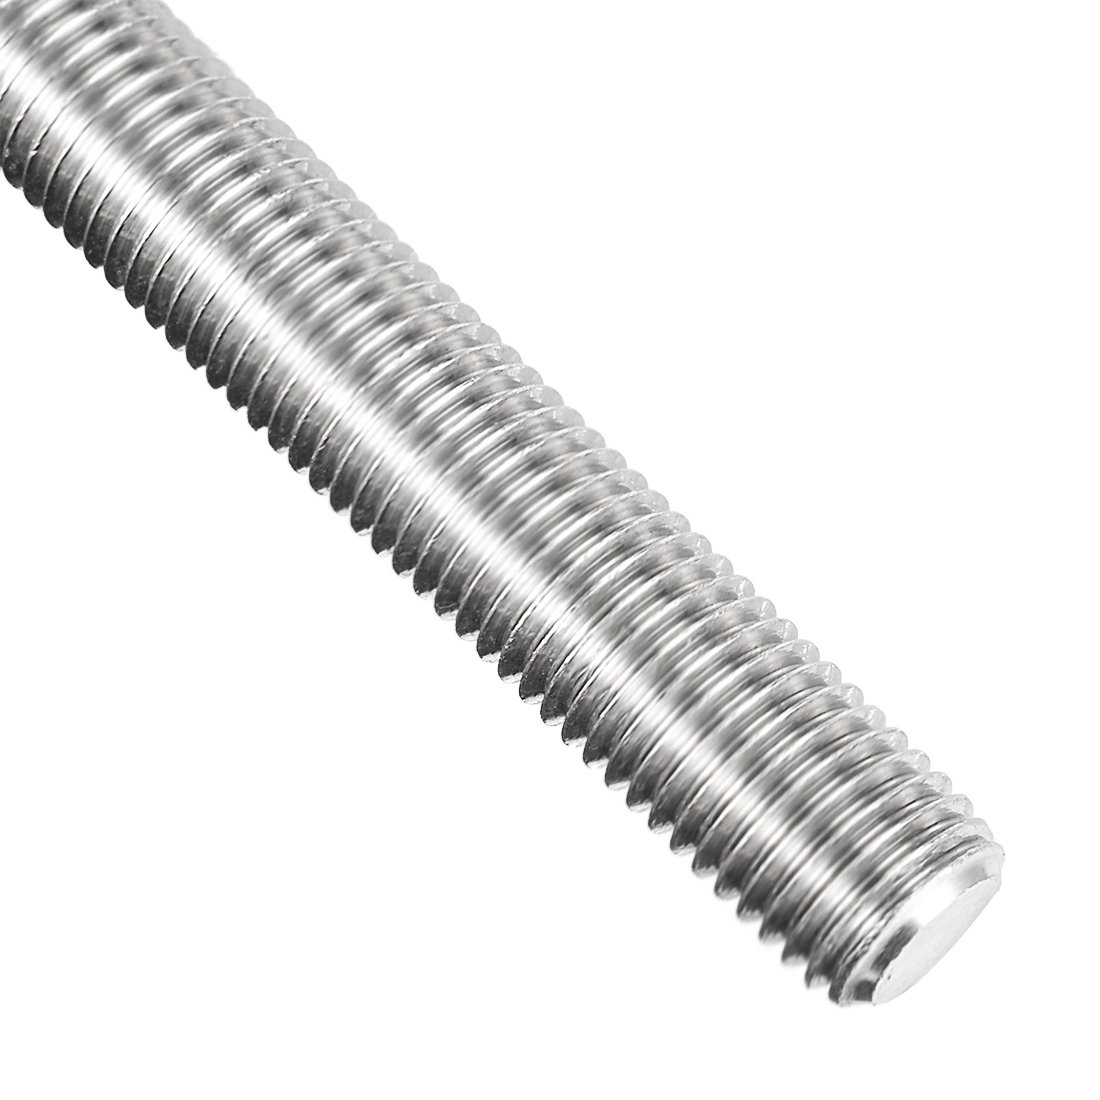 uxcell M16 Fully Threaded Rod, 304 Stainless Steel, 250mm Length, 2 0mm  Thread Pitch, Left Hand Threads